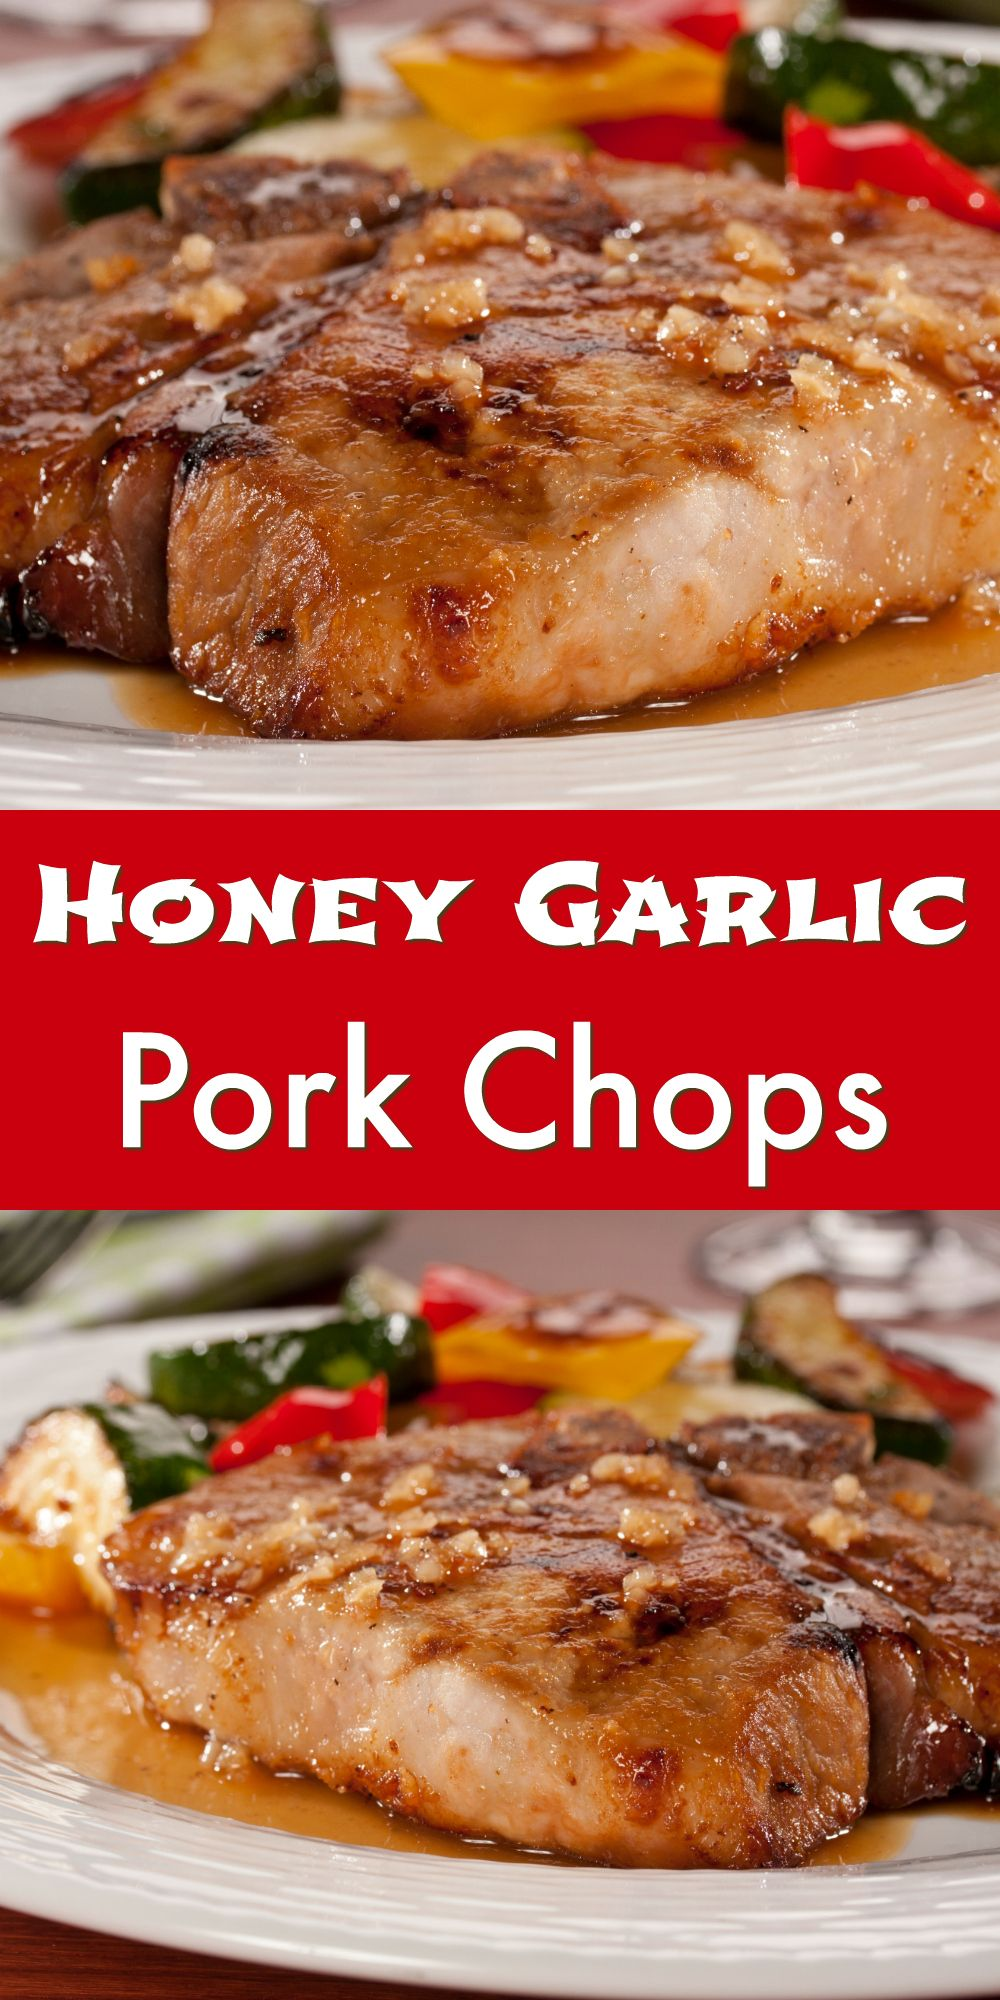 Honey Garlic Pork Chops Puts A Healthy Spin On The Traditional Chinese Restaurant Dish